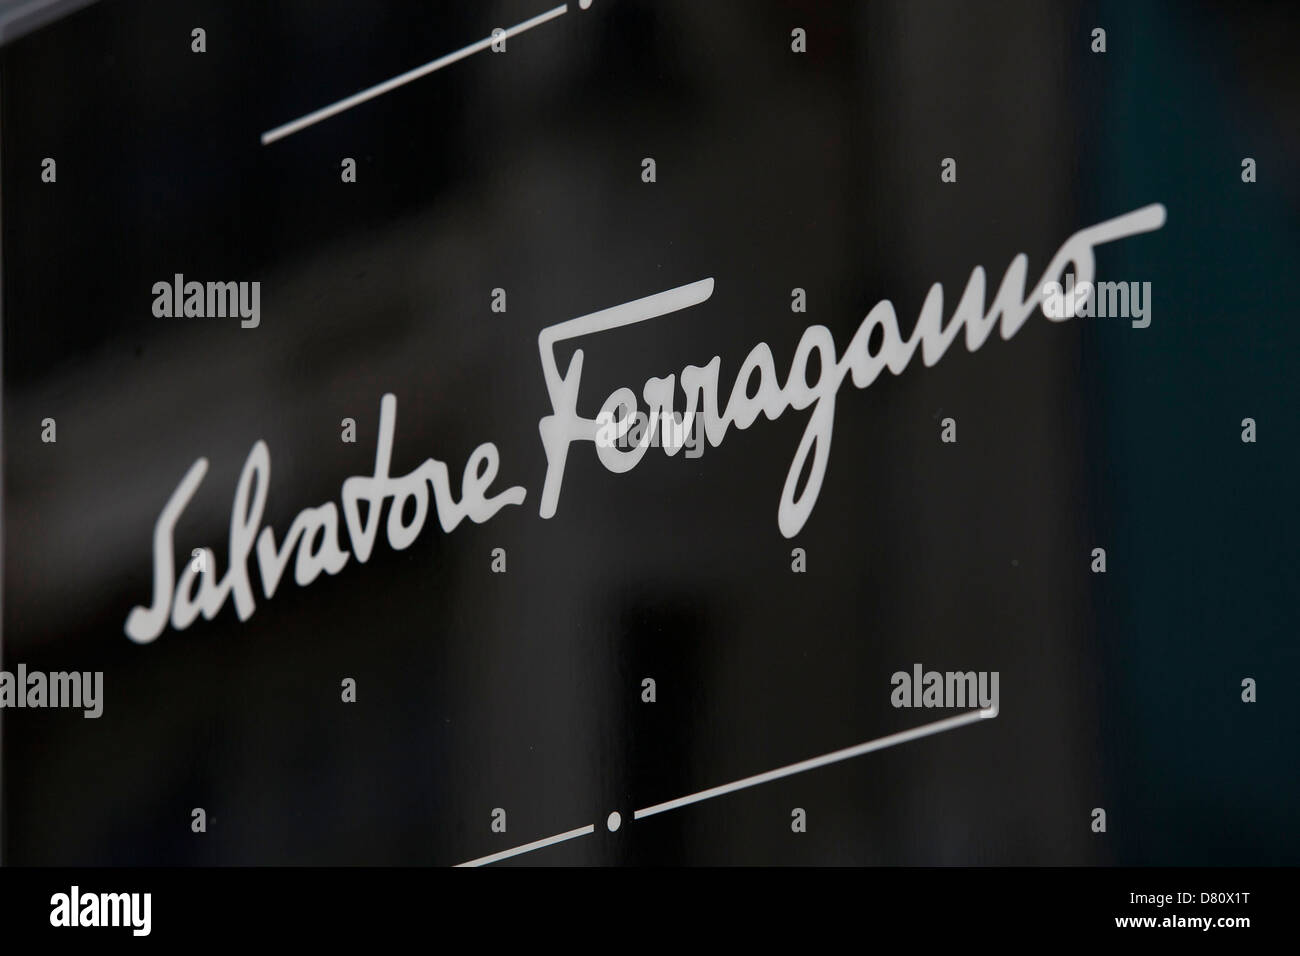 Sign for high end fashion and exclusive brand Salvatore Ferragamo. - Stock Image